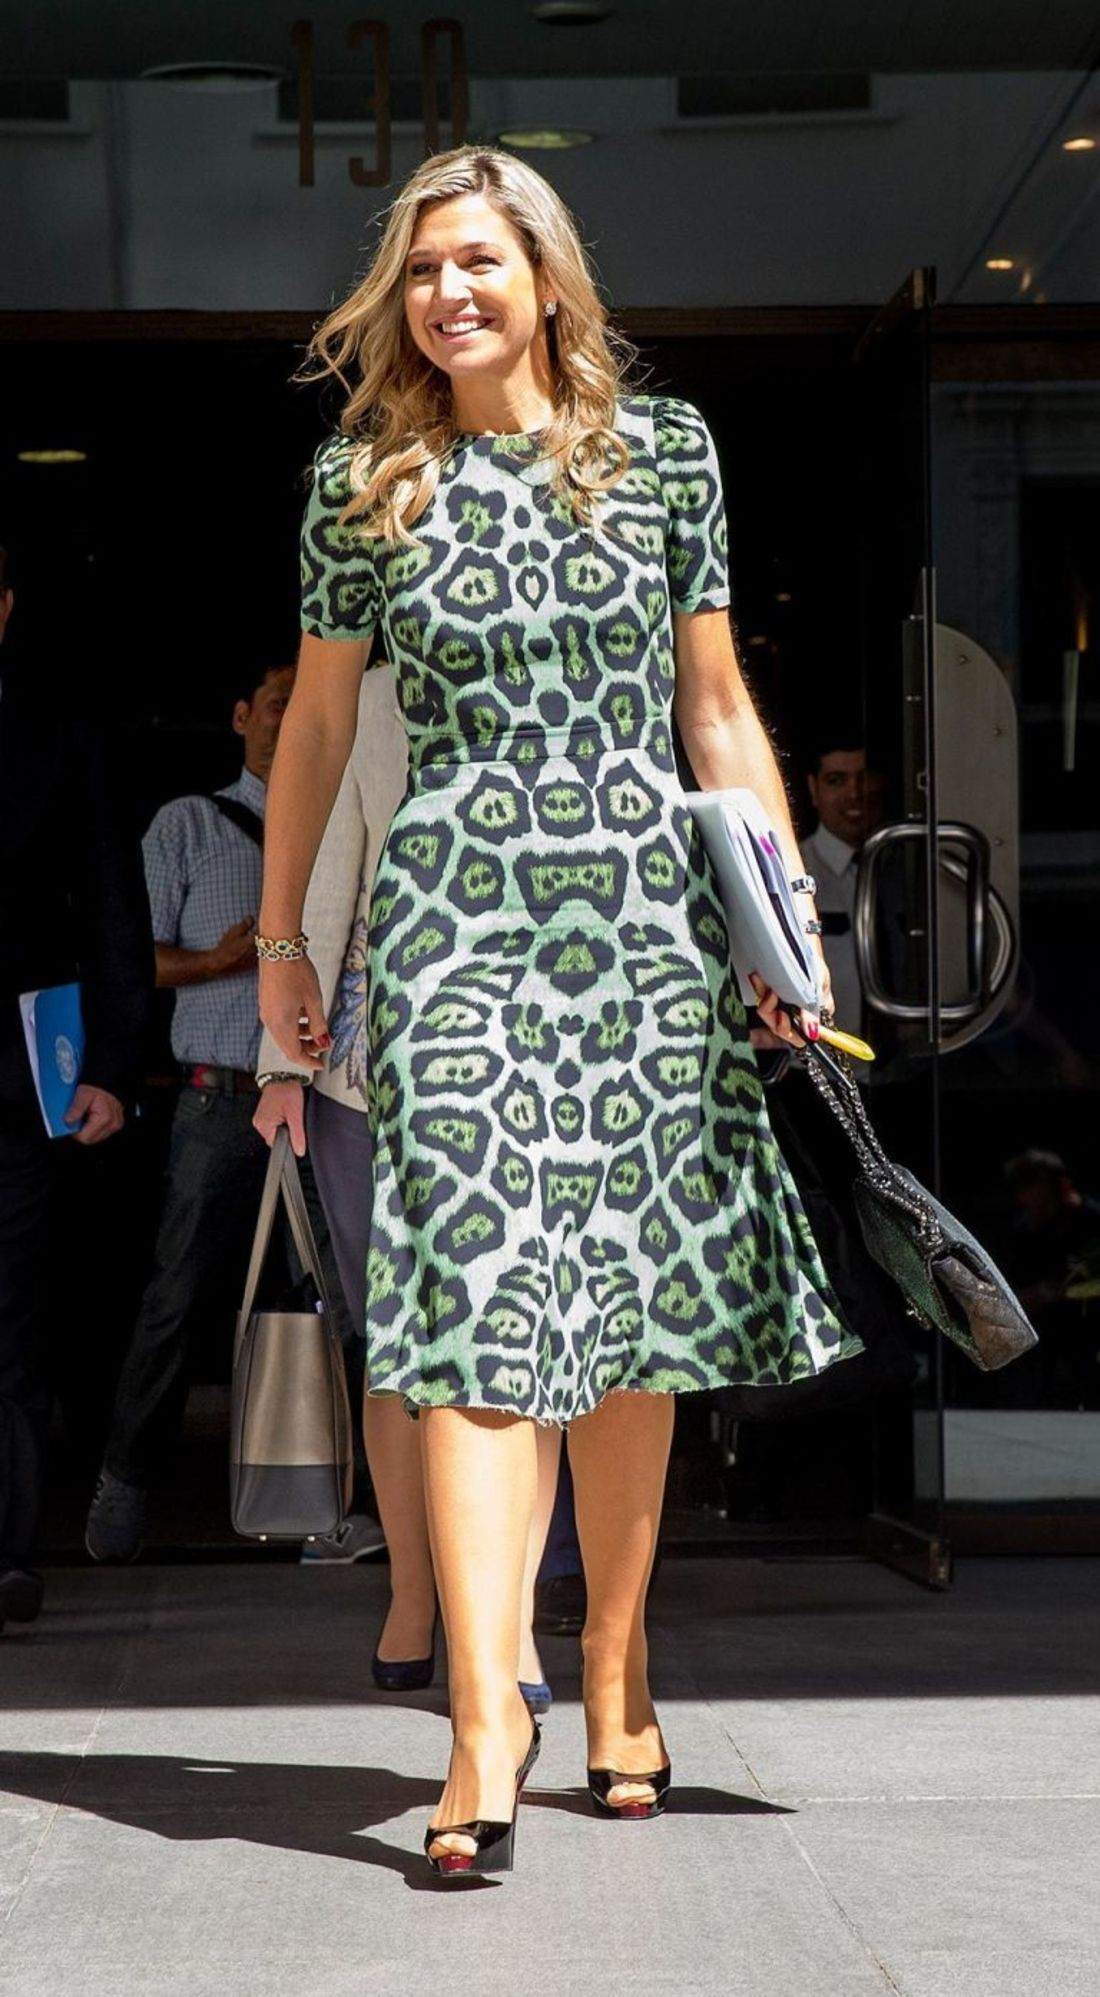 11 October 2016 - Royal visit to Argentina (day 1): Queen Maxima at the UNDP office in Buenos Aires - dress by Givenchy